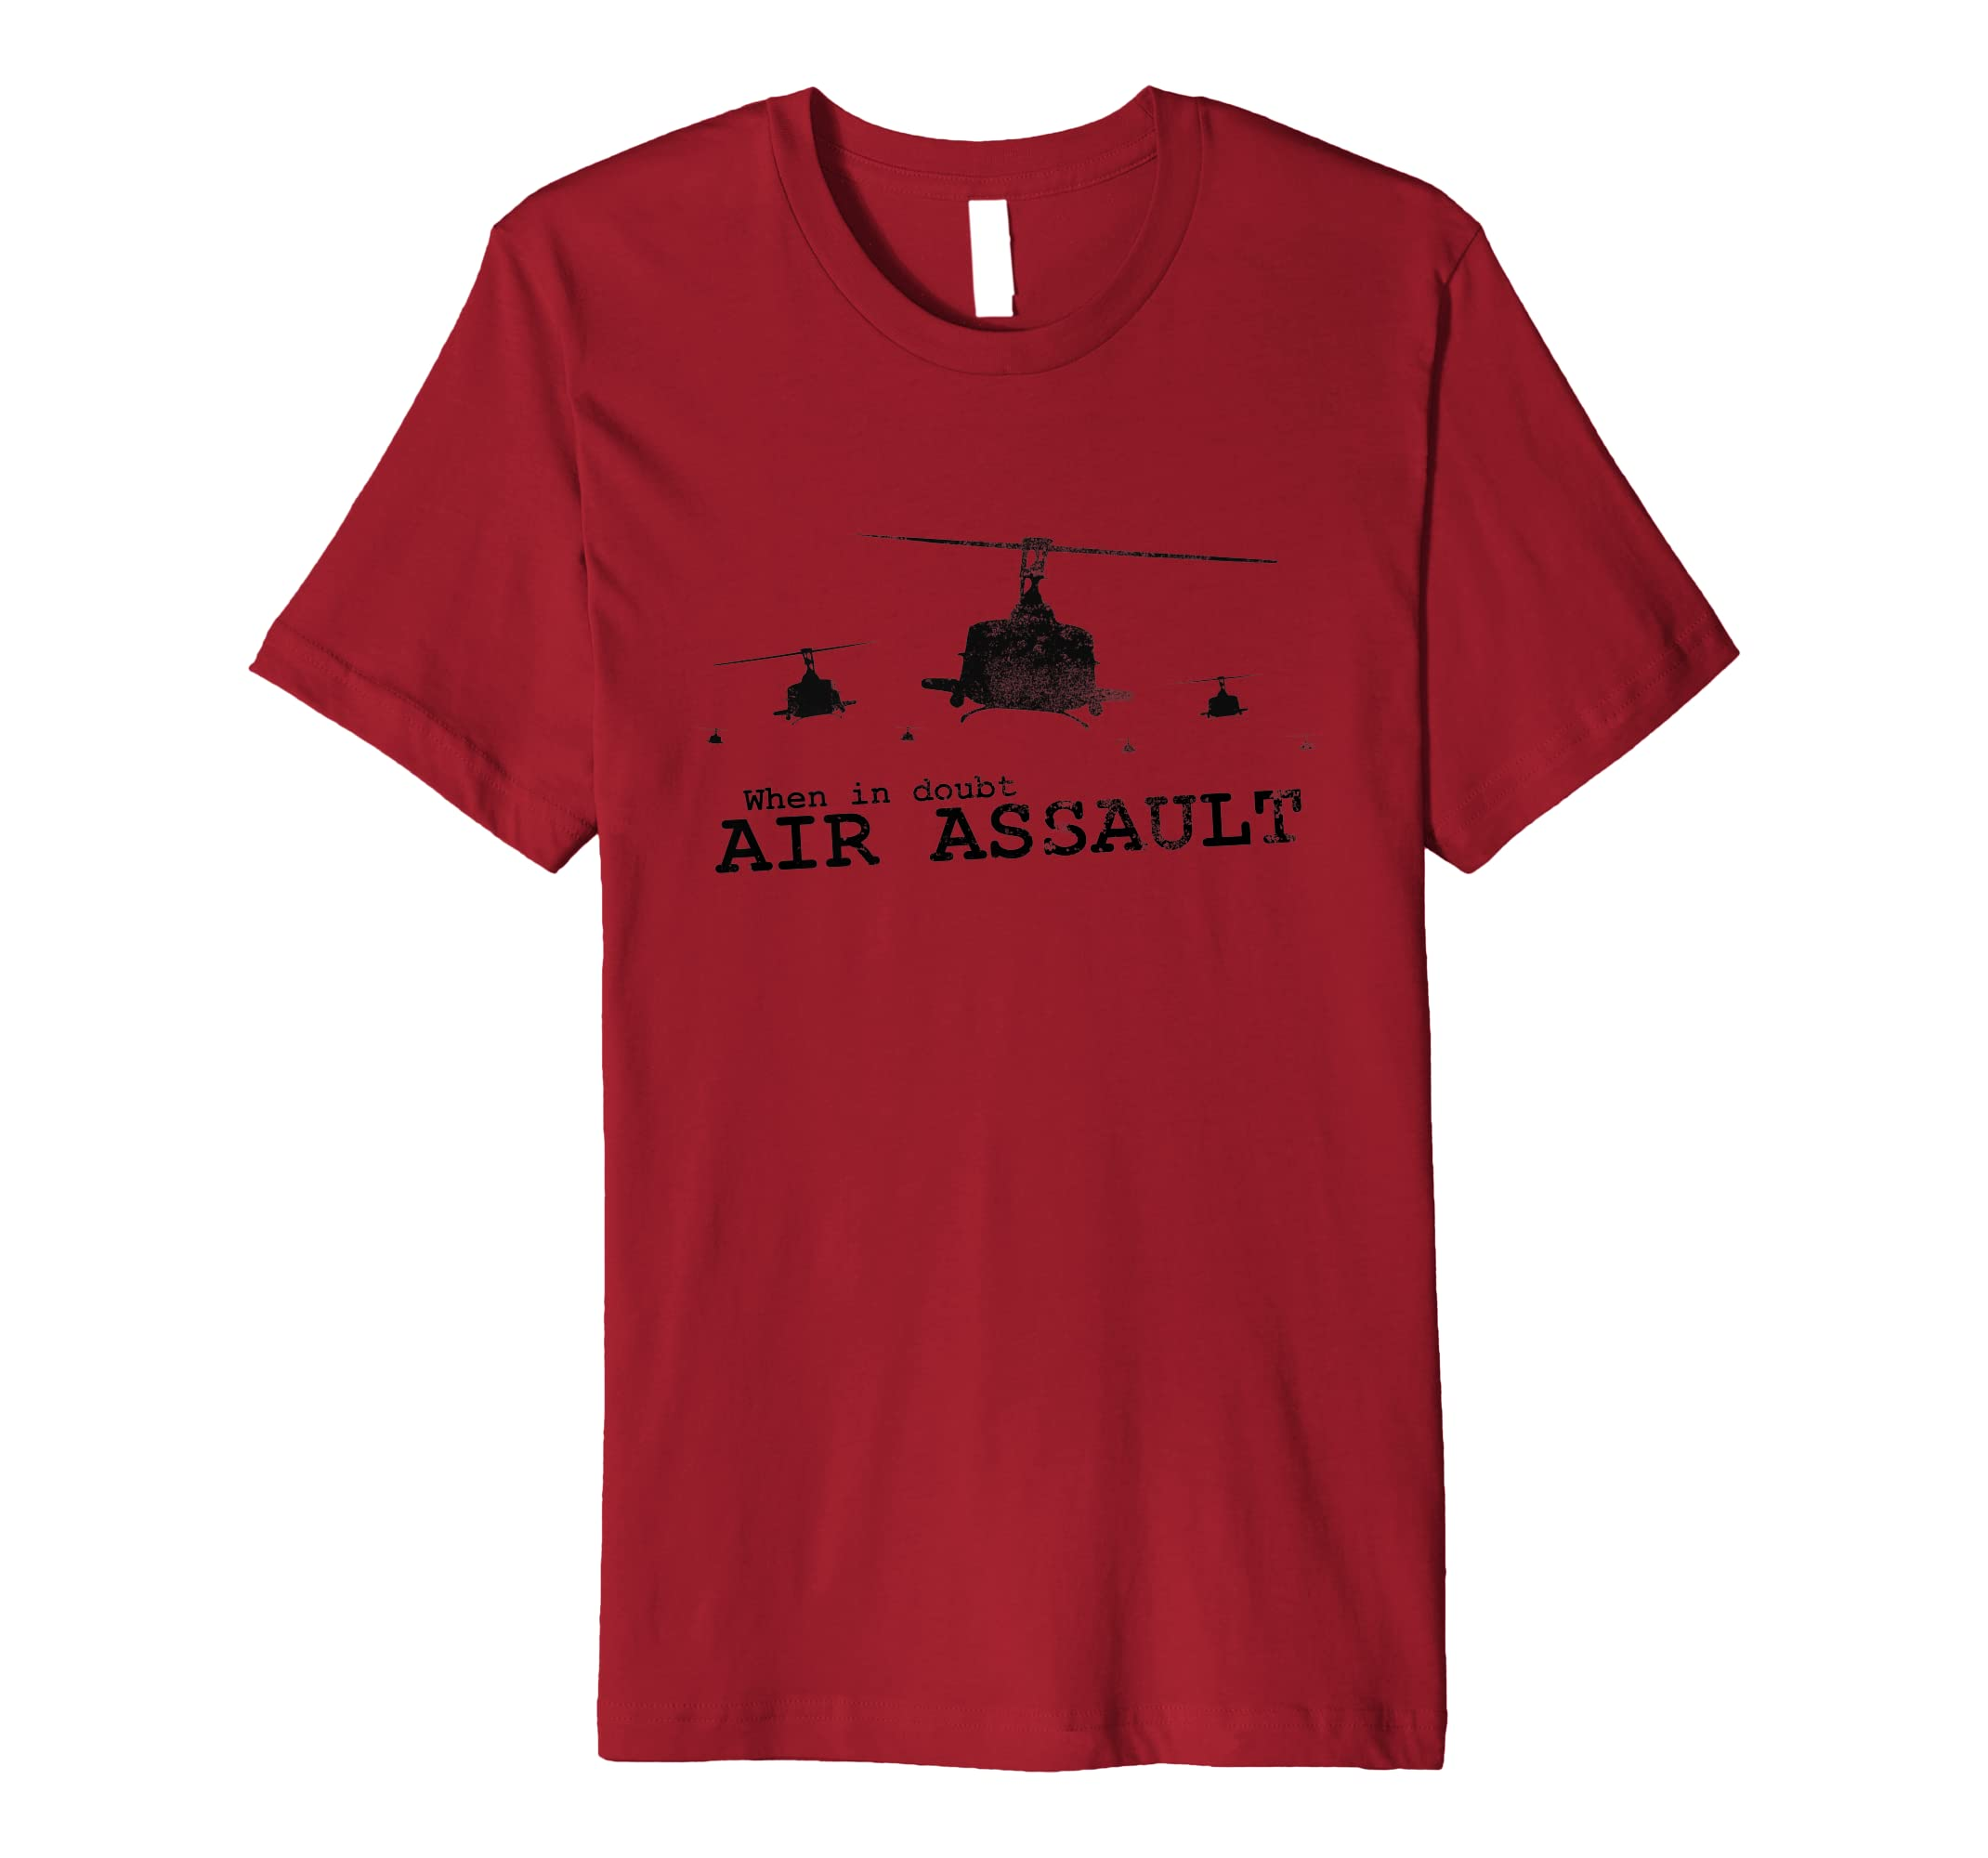 Airborne T-shirt - When In Doubt... (distressed/subdued)-ANZ